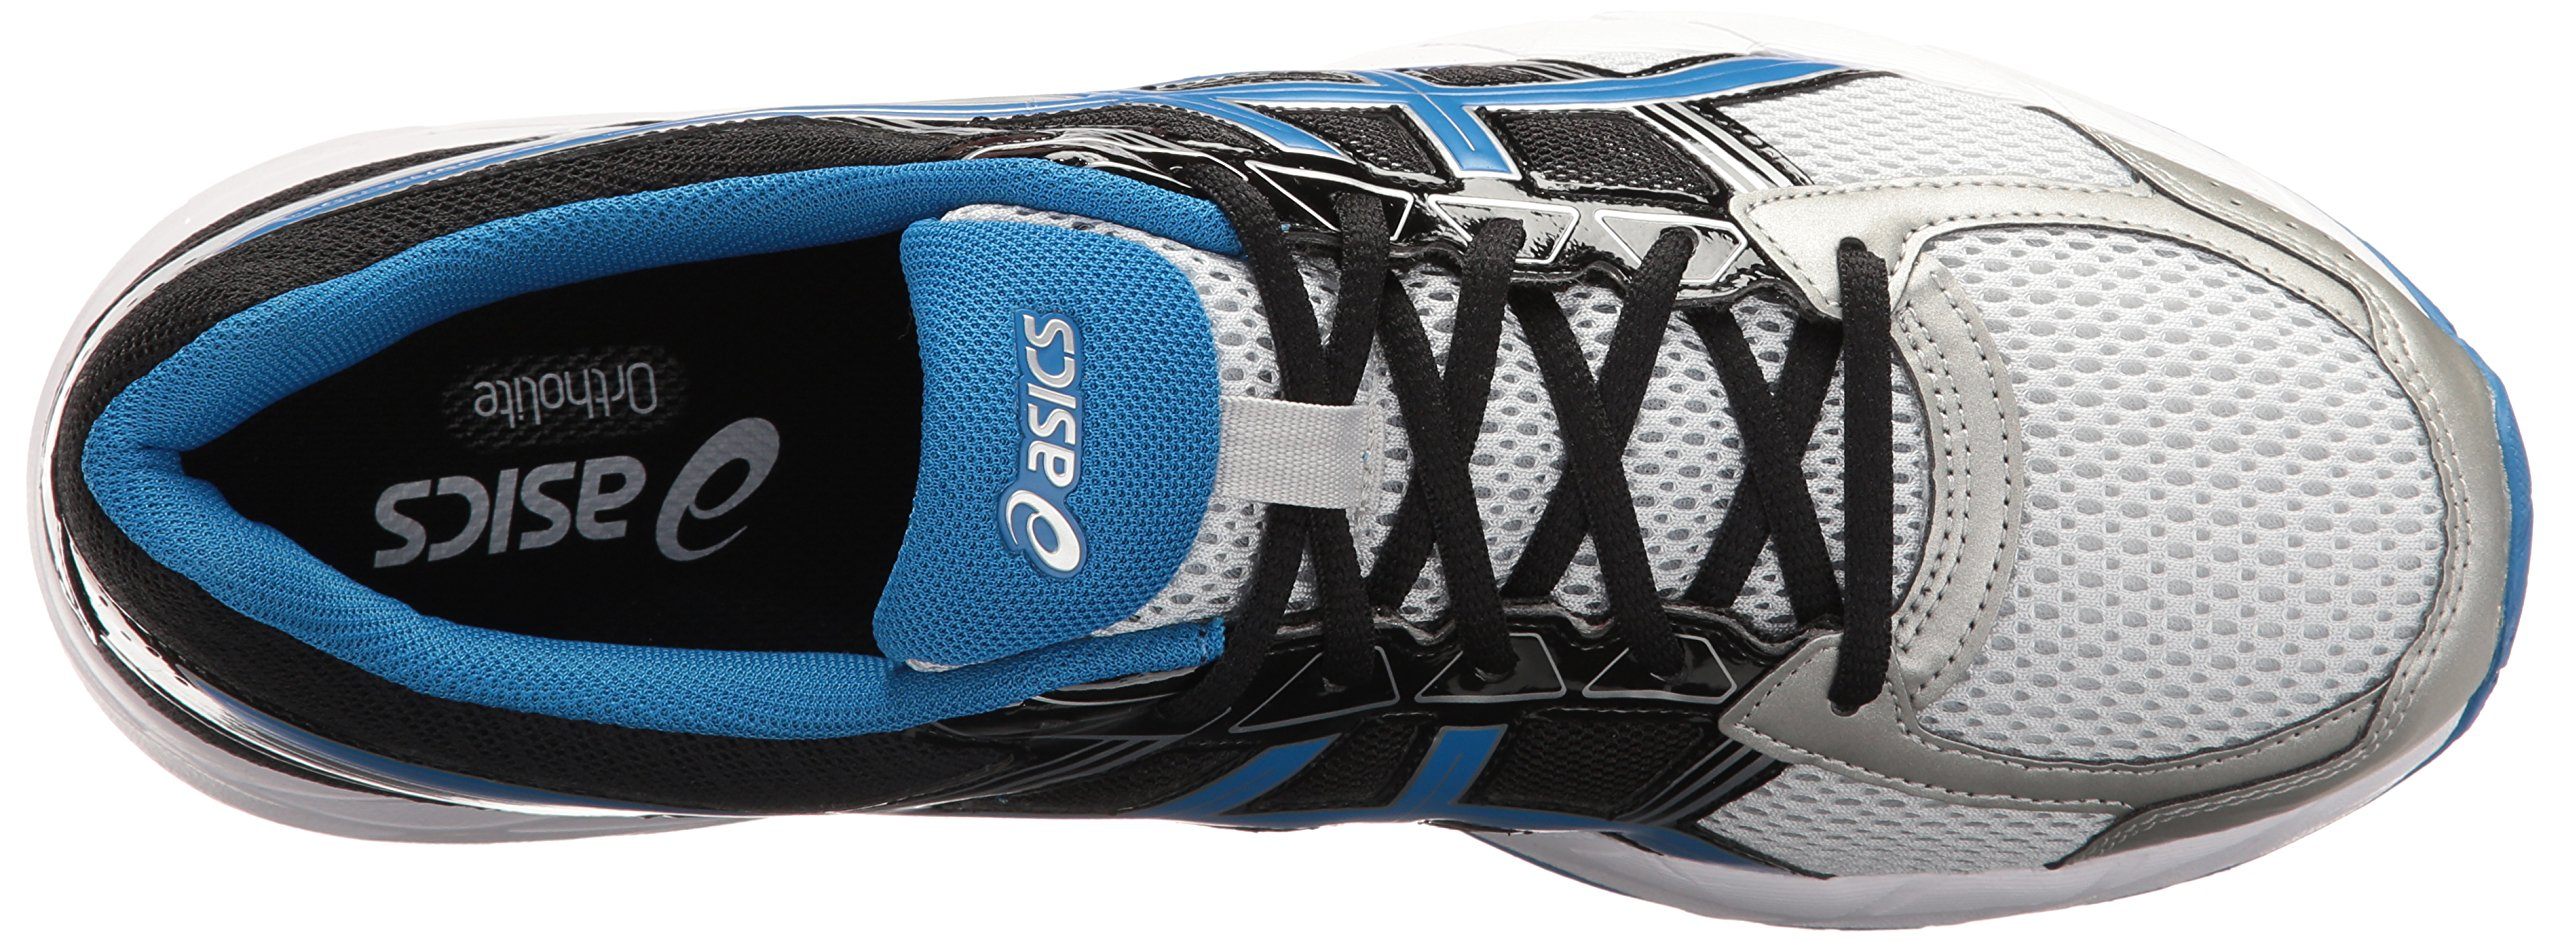 ASICS Men's Gel-Contend 4 Running Shoe, Silver/Classic Blue/Black, 7.5 M US by ASICS (Image #8)